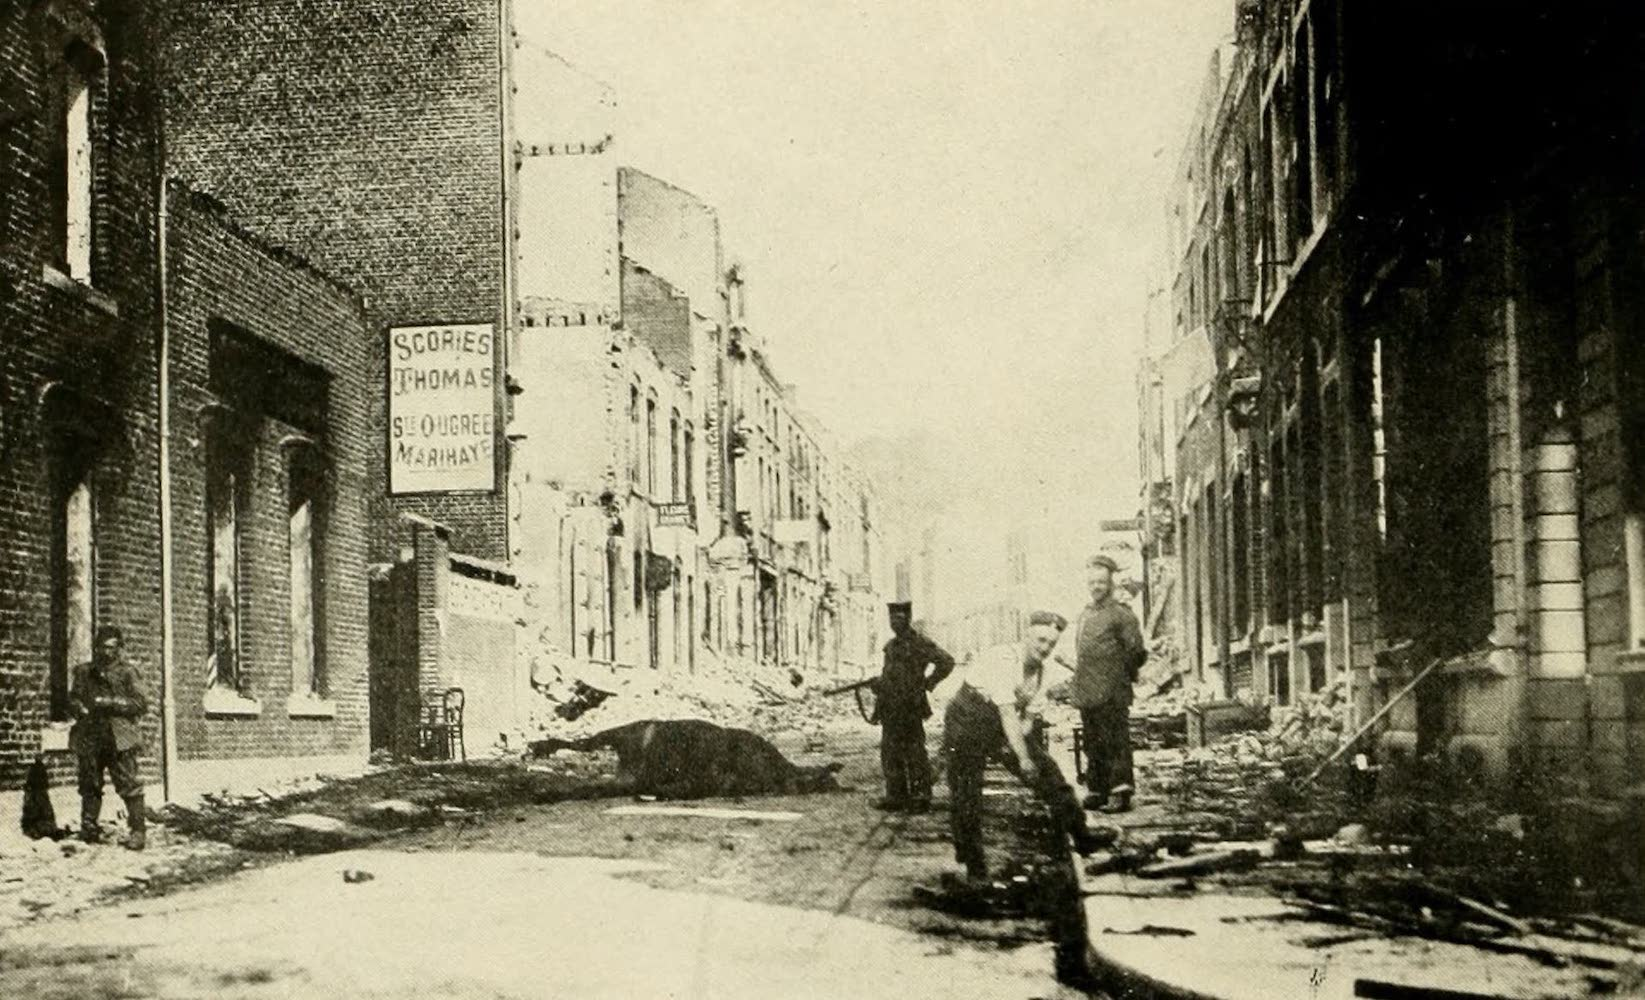 Laird & Lee's World's War Glimpses - Vise, Devastated By the Germans (1914)